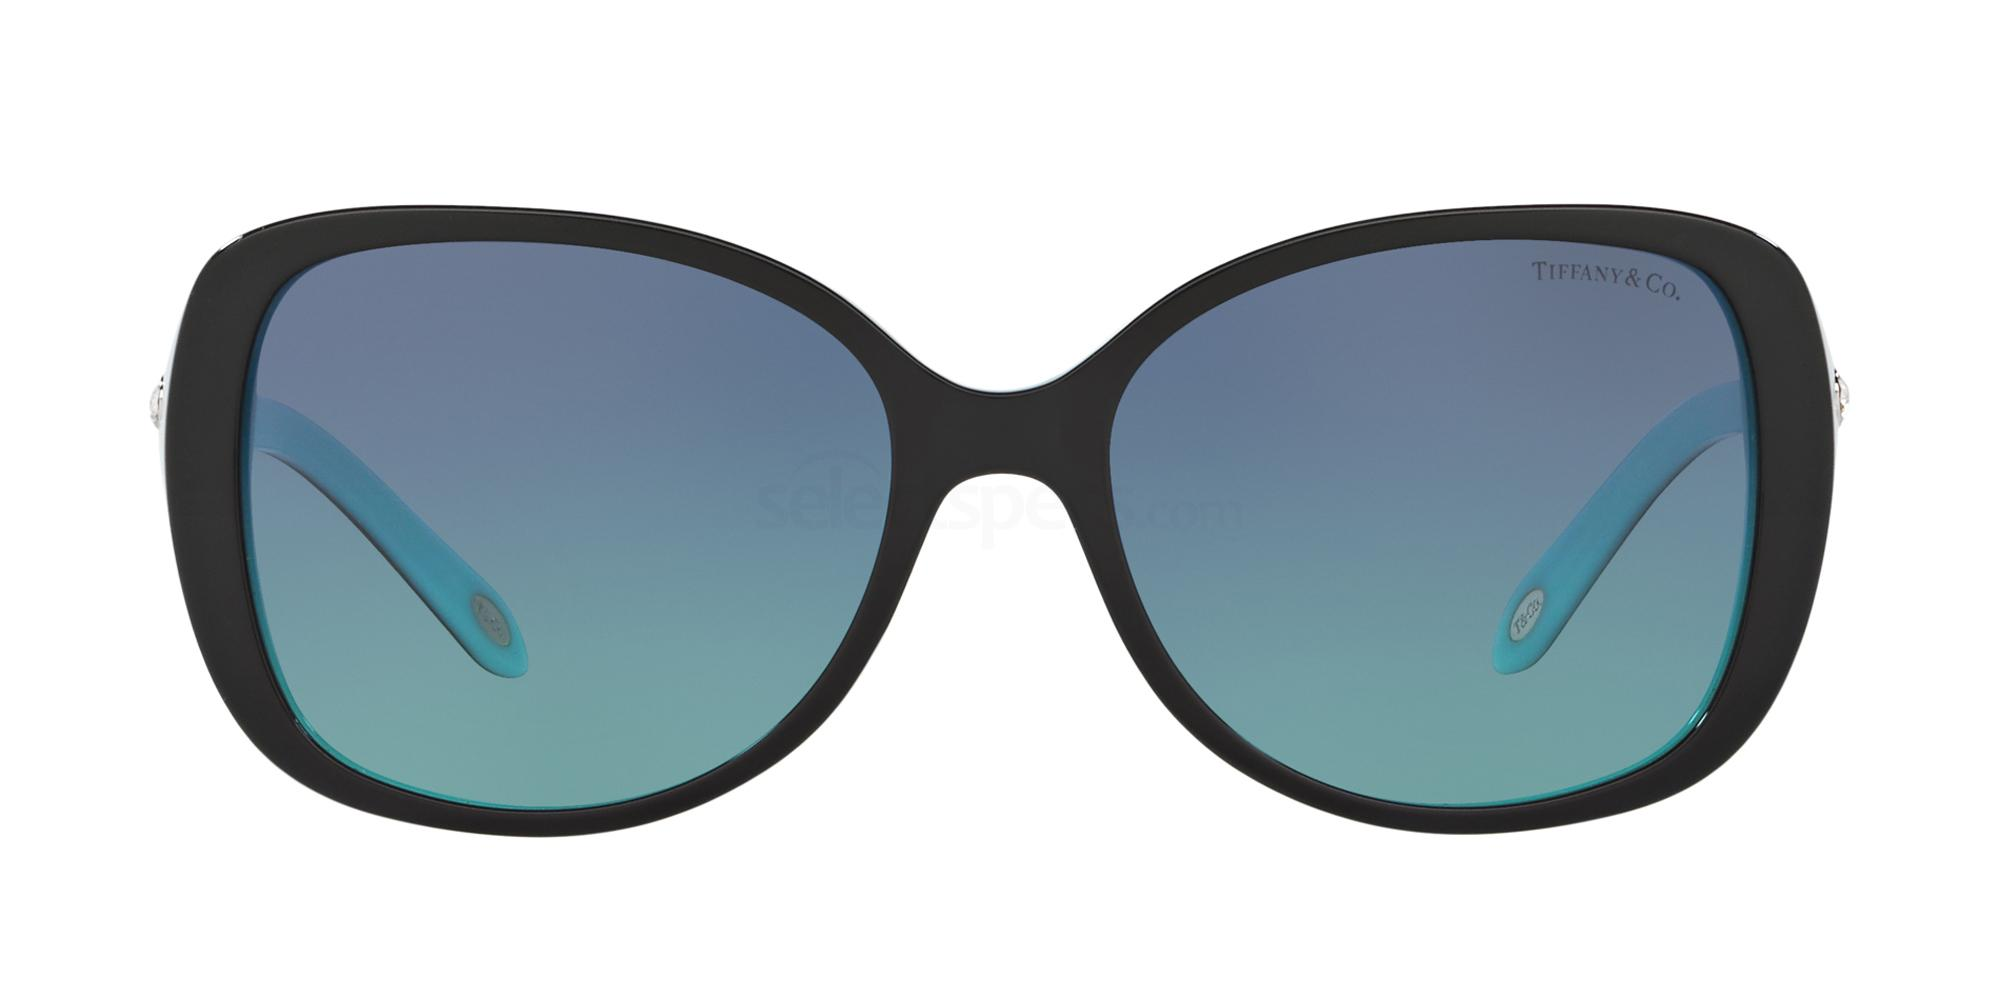 2020 luxury sunglasses gift guide for her tiffany & co